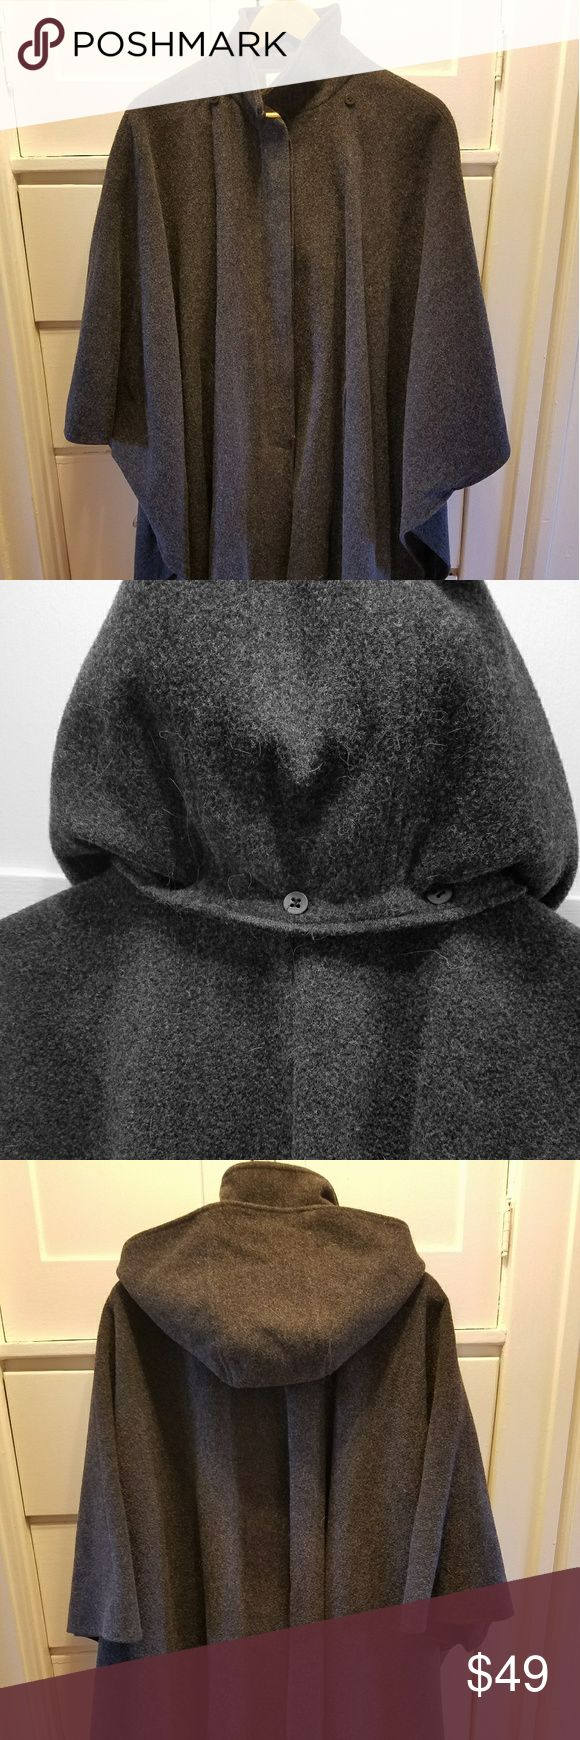 Talbots Petite dark gray wool hooded cape ONE SIZE This beautiful wool cape will carry you through the end of winter and into spring in style!   It's a one-size-fits-all Talbots Petites cape, measuring roughly 52 inches from wrist to wrist. It's very roomy. There are five hidden buttons on the front and two pockets. There is a removable hood held on with buttons. The cape measures 39 inches from the back center collar to the bottom hem.   The dark gray cape is in excellent used condition…